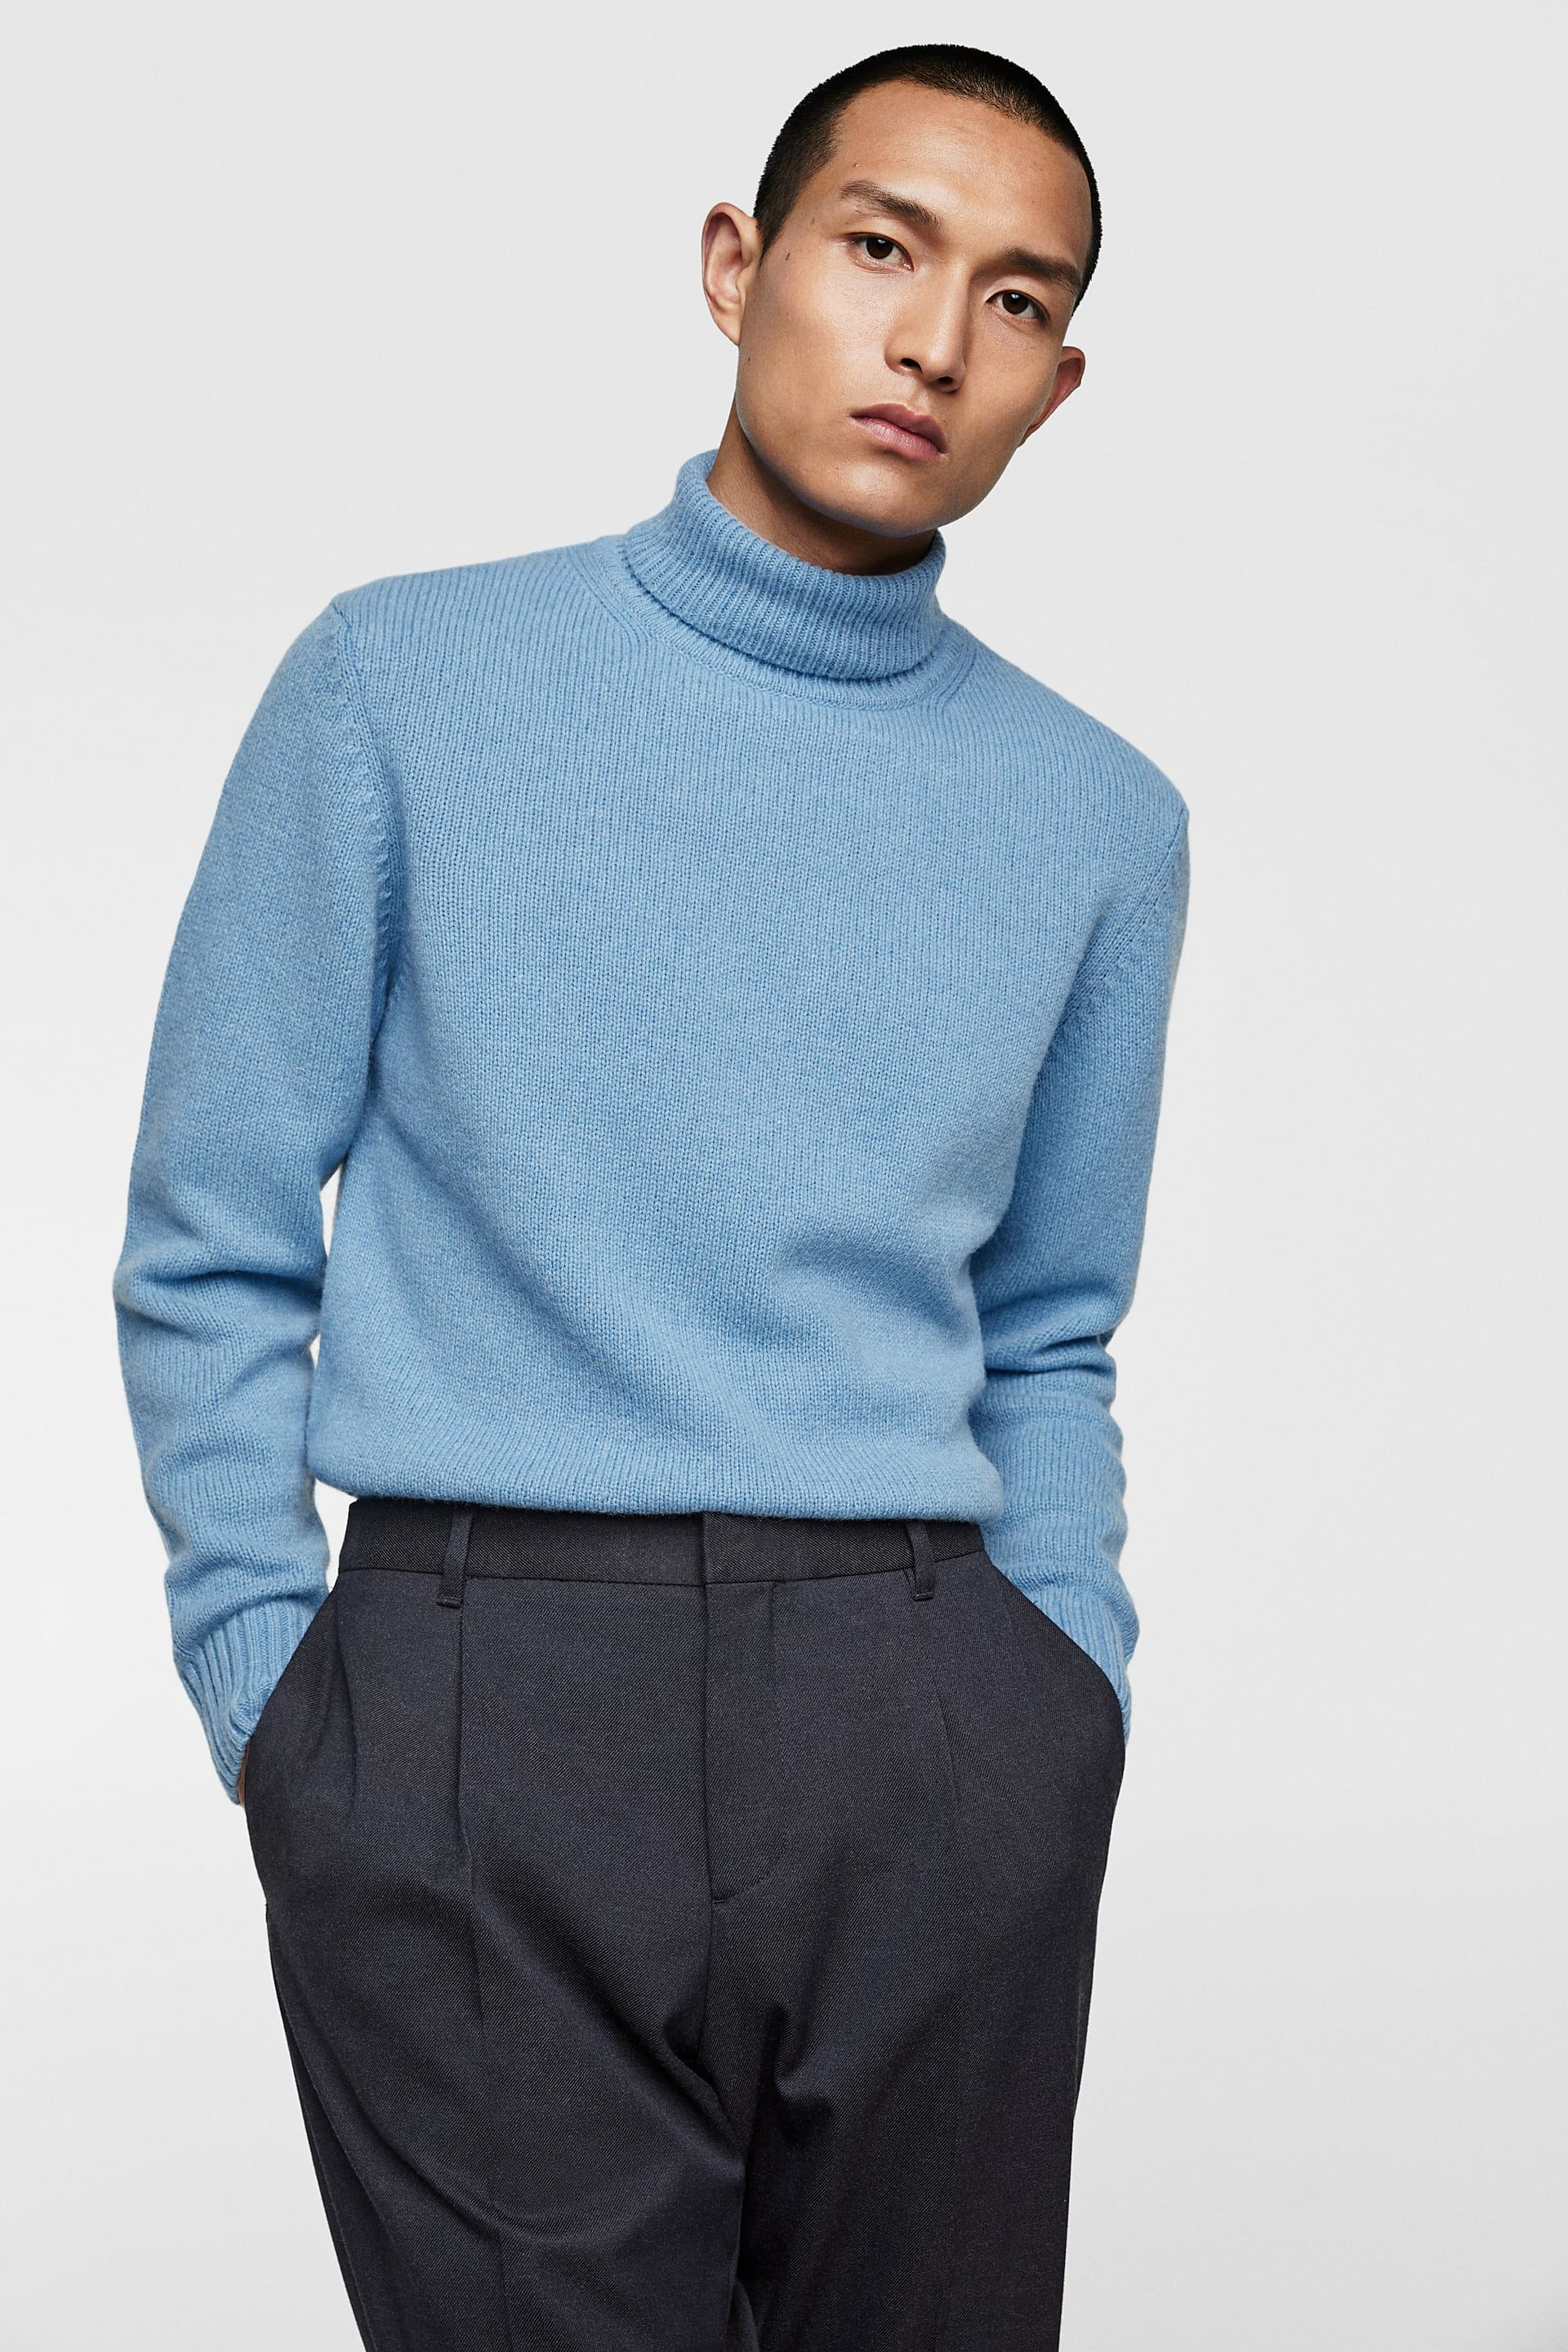 df4d30b9794c52 Pin by Chris James on Guys wearing polo necks / roll necks and ...